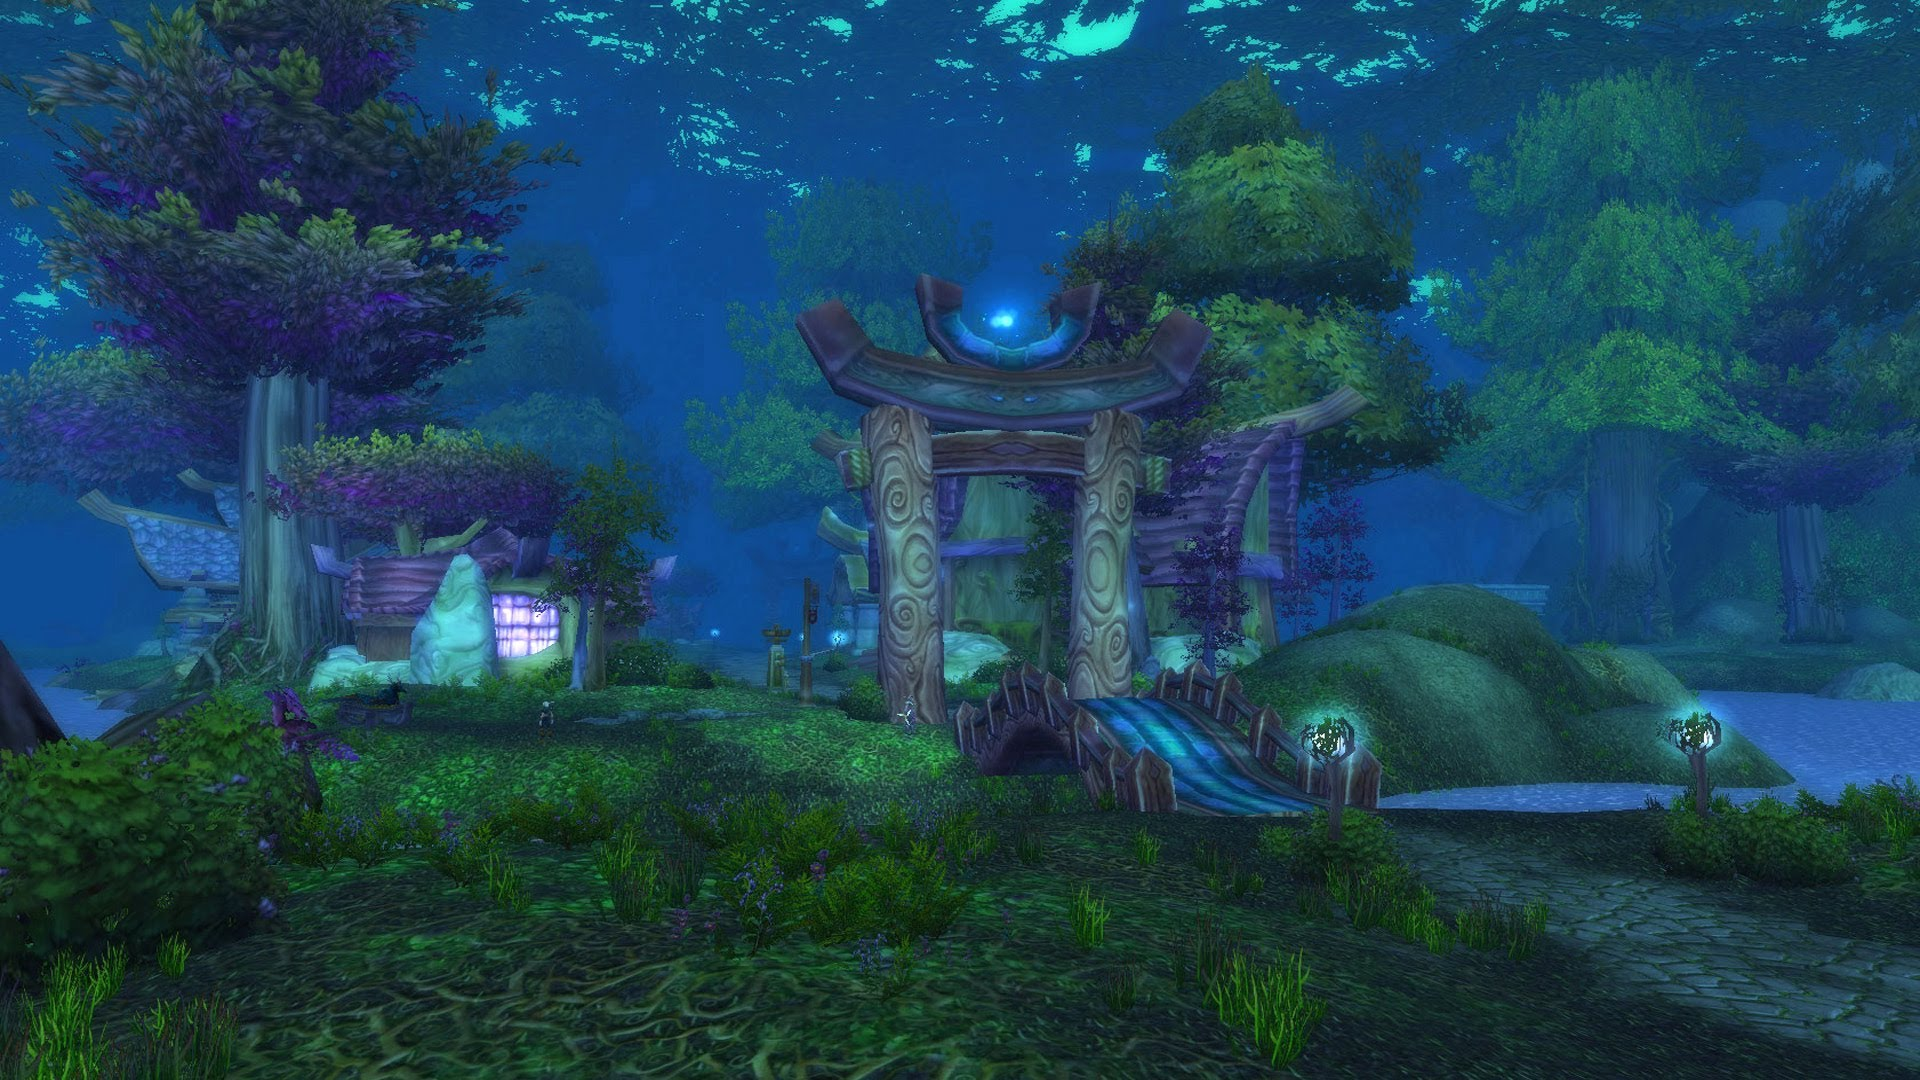 Jungle Wallpaper World Of Warcraft: The 10 Most Interesting World Of Warcraft Zones :: Games